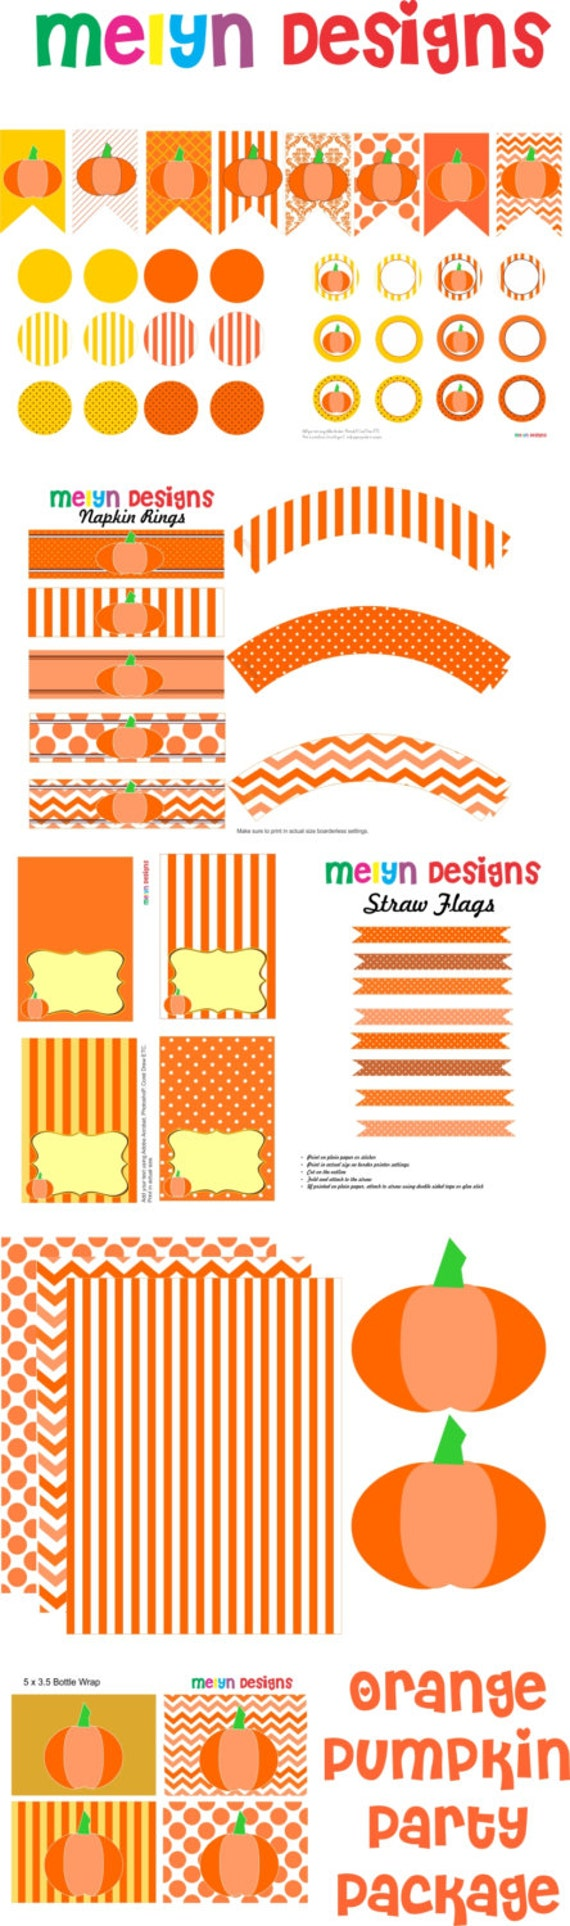 https://www.etsy.com/listing/168034914/diy-printable-orange-pumpkin-party?ref=shop_home_feat